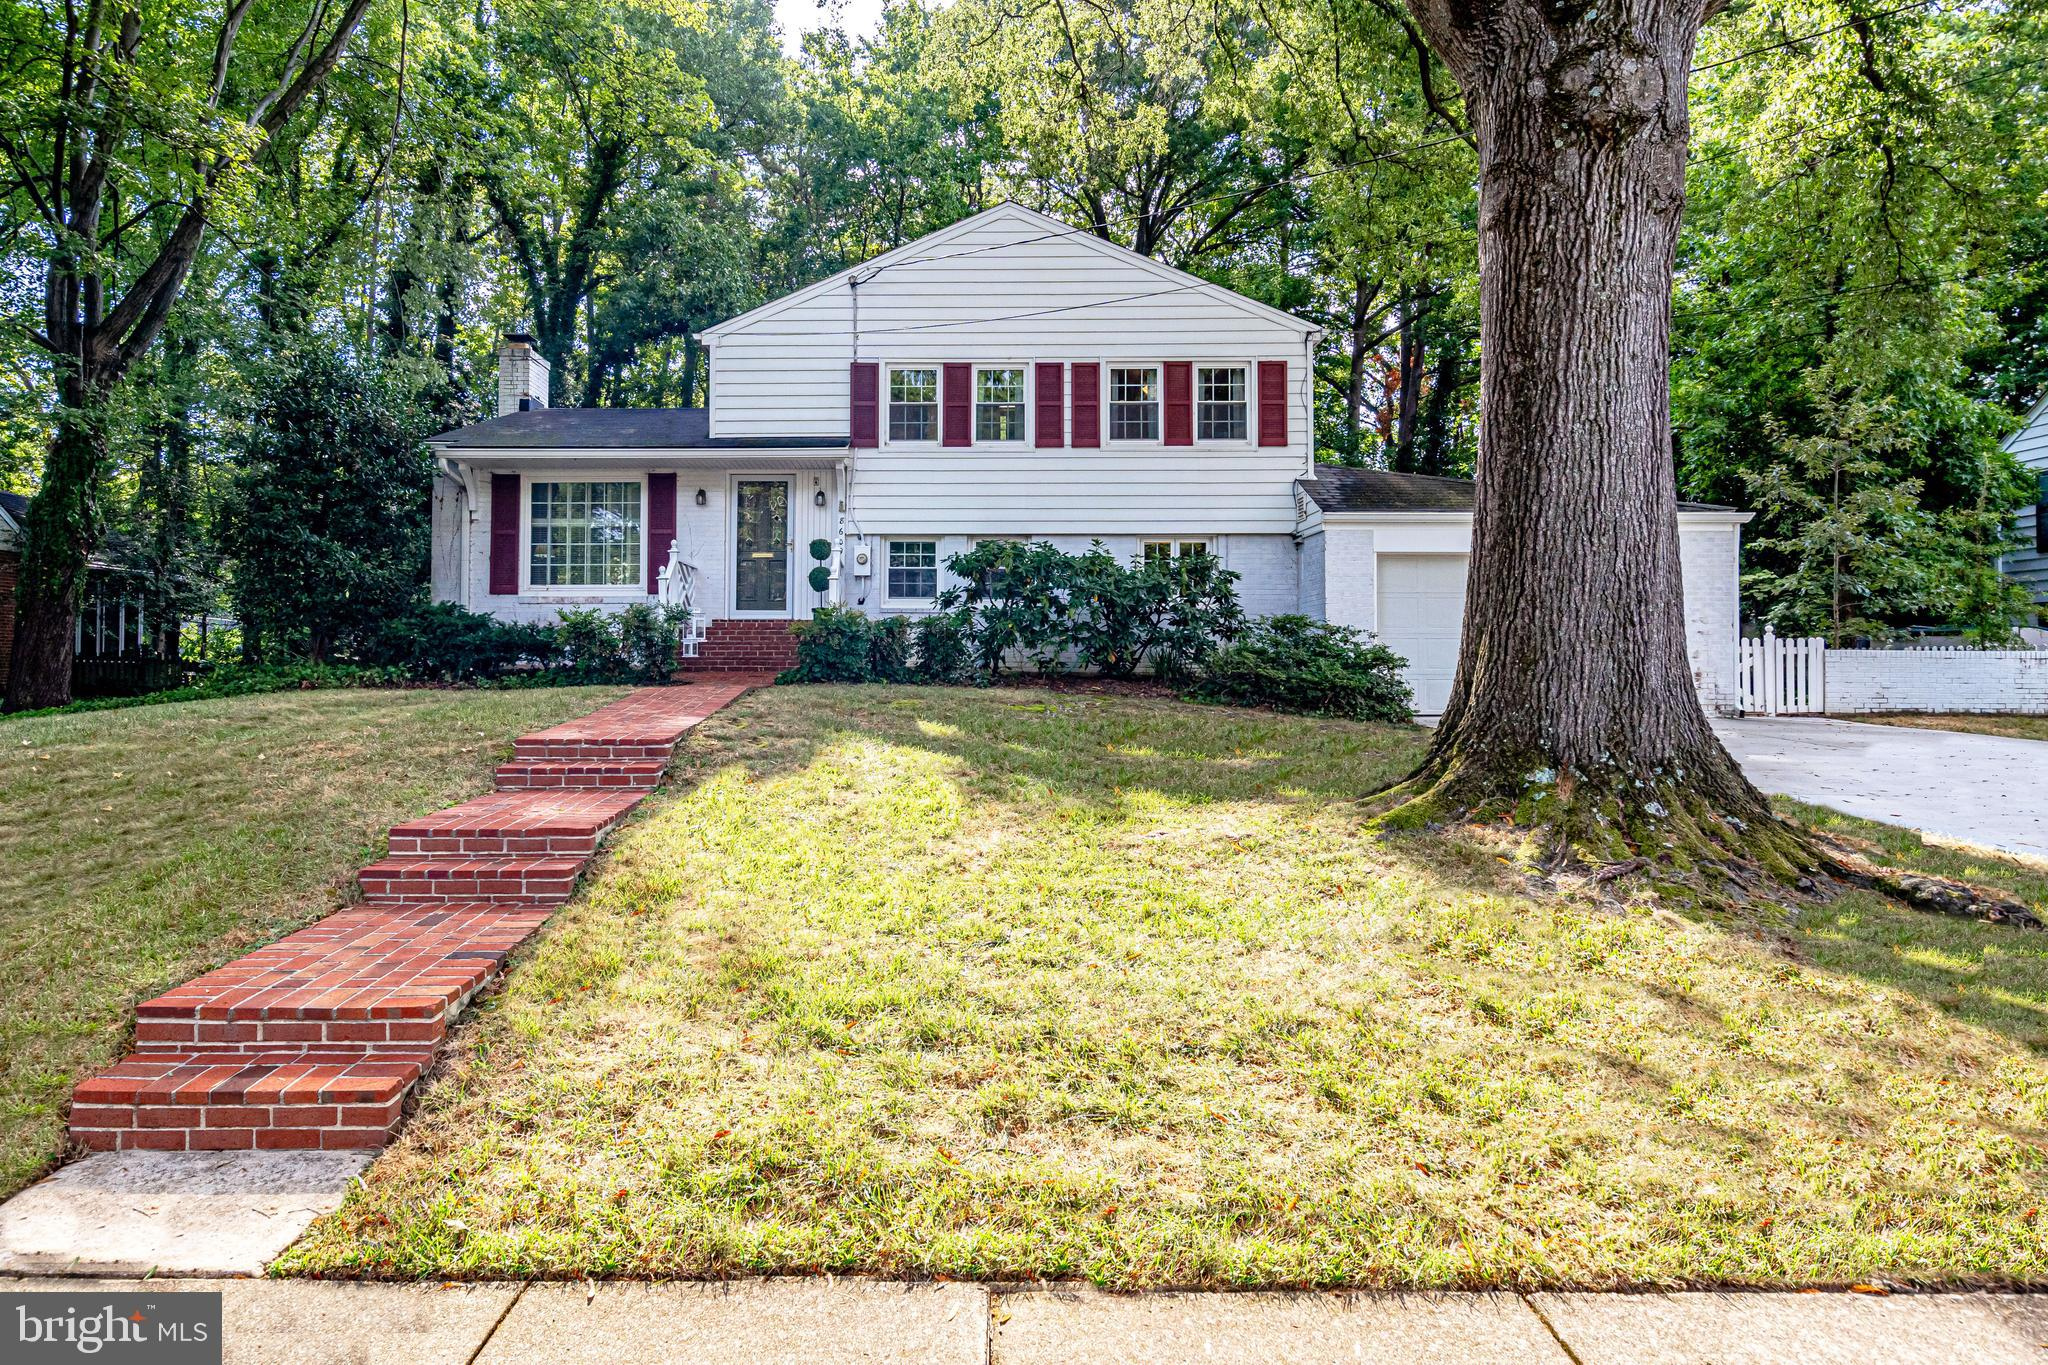 Expanded and backing to the community pool- this 4 level Salem Model offers many updates and features including an oversized 1 car garage, 3 season sunroom or all year mudroom, large vaulted ceiling family room addition with fireplace (16 x 20), brick patio, fenced in backyard, double pane vinyl windows, remodeled full bath. Covered patio off living room. 3 bedrooms + Den! HVAC 2010, Hot Water Heater 2015.  Brand new concrete driveway.  Current owners have loved and maintained this home for 30+ years however the home is ready for some cosmetic updates.  The home is in great condition and shows well!